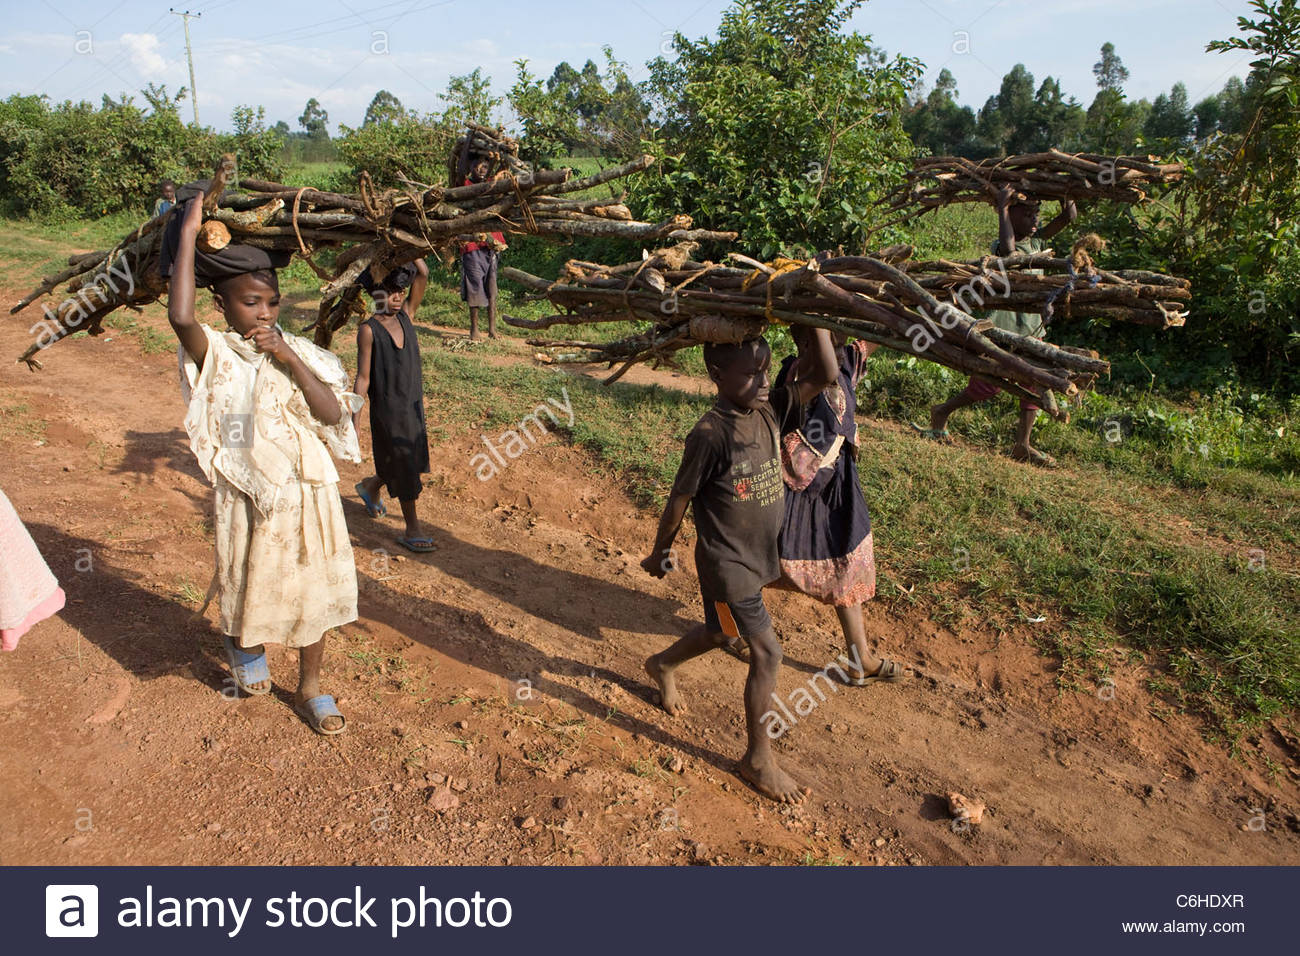 Children walking along a sand road carrying firewood on their heads - Stock Image